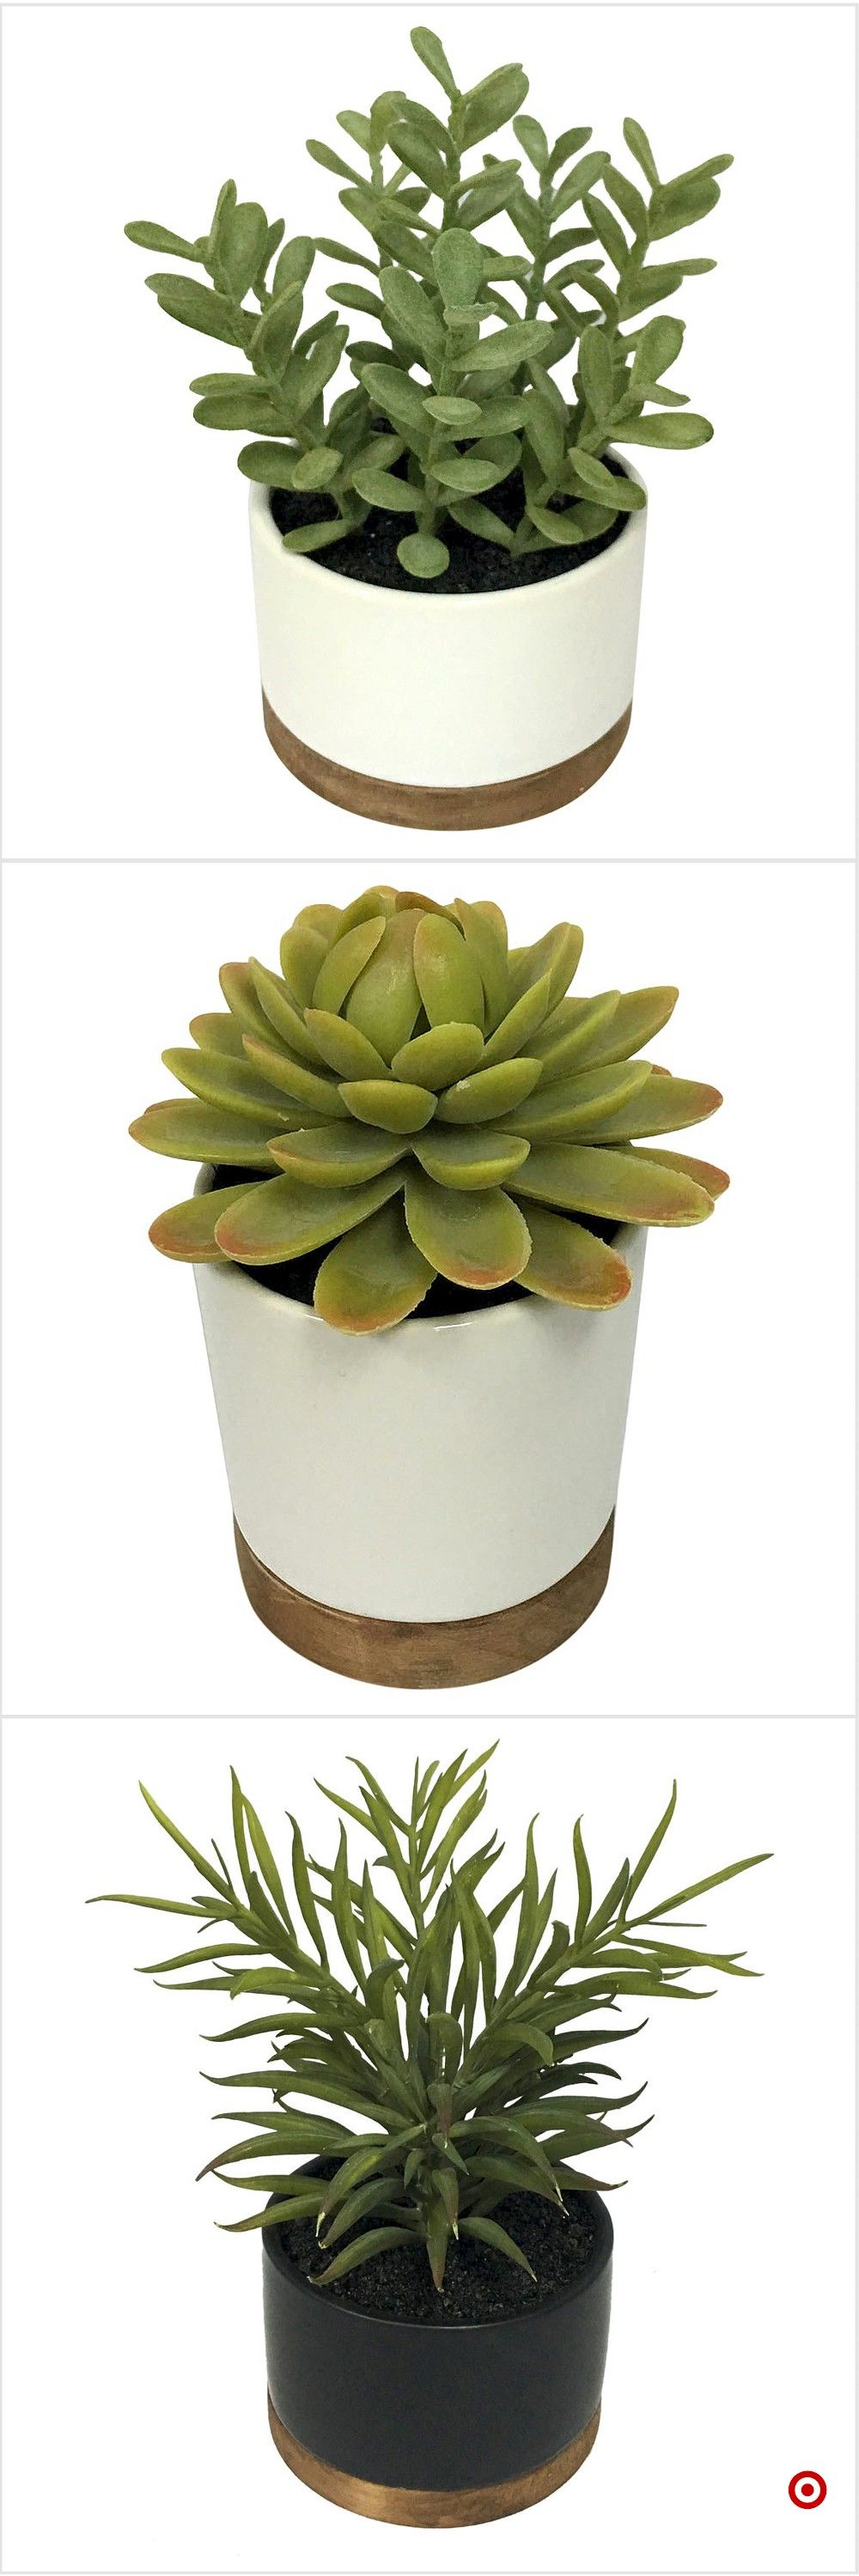 Shop target for artificial plant you will love at great low prices